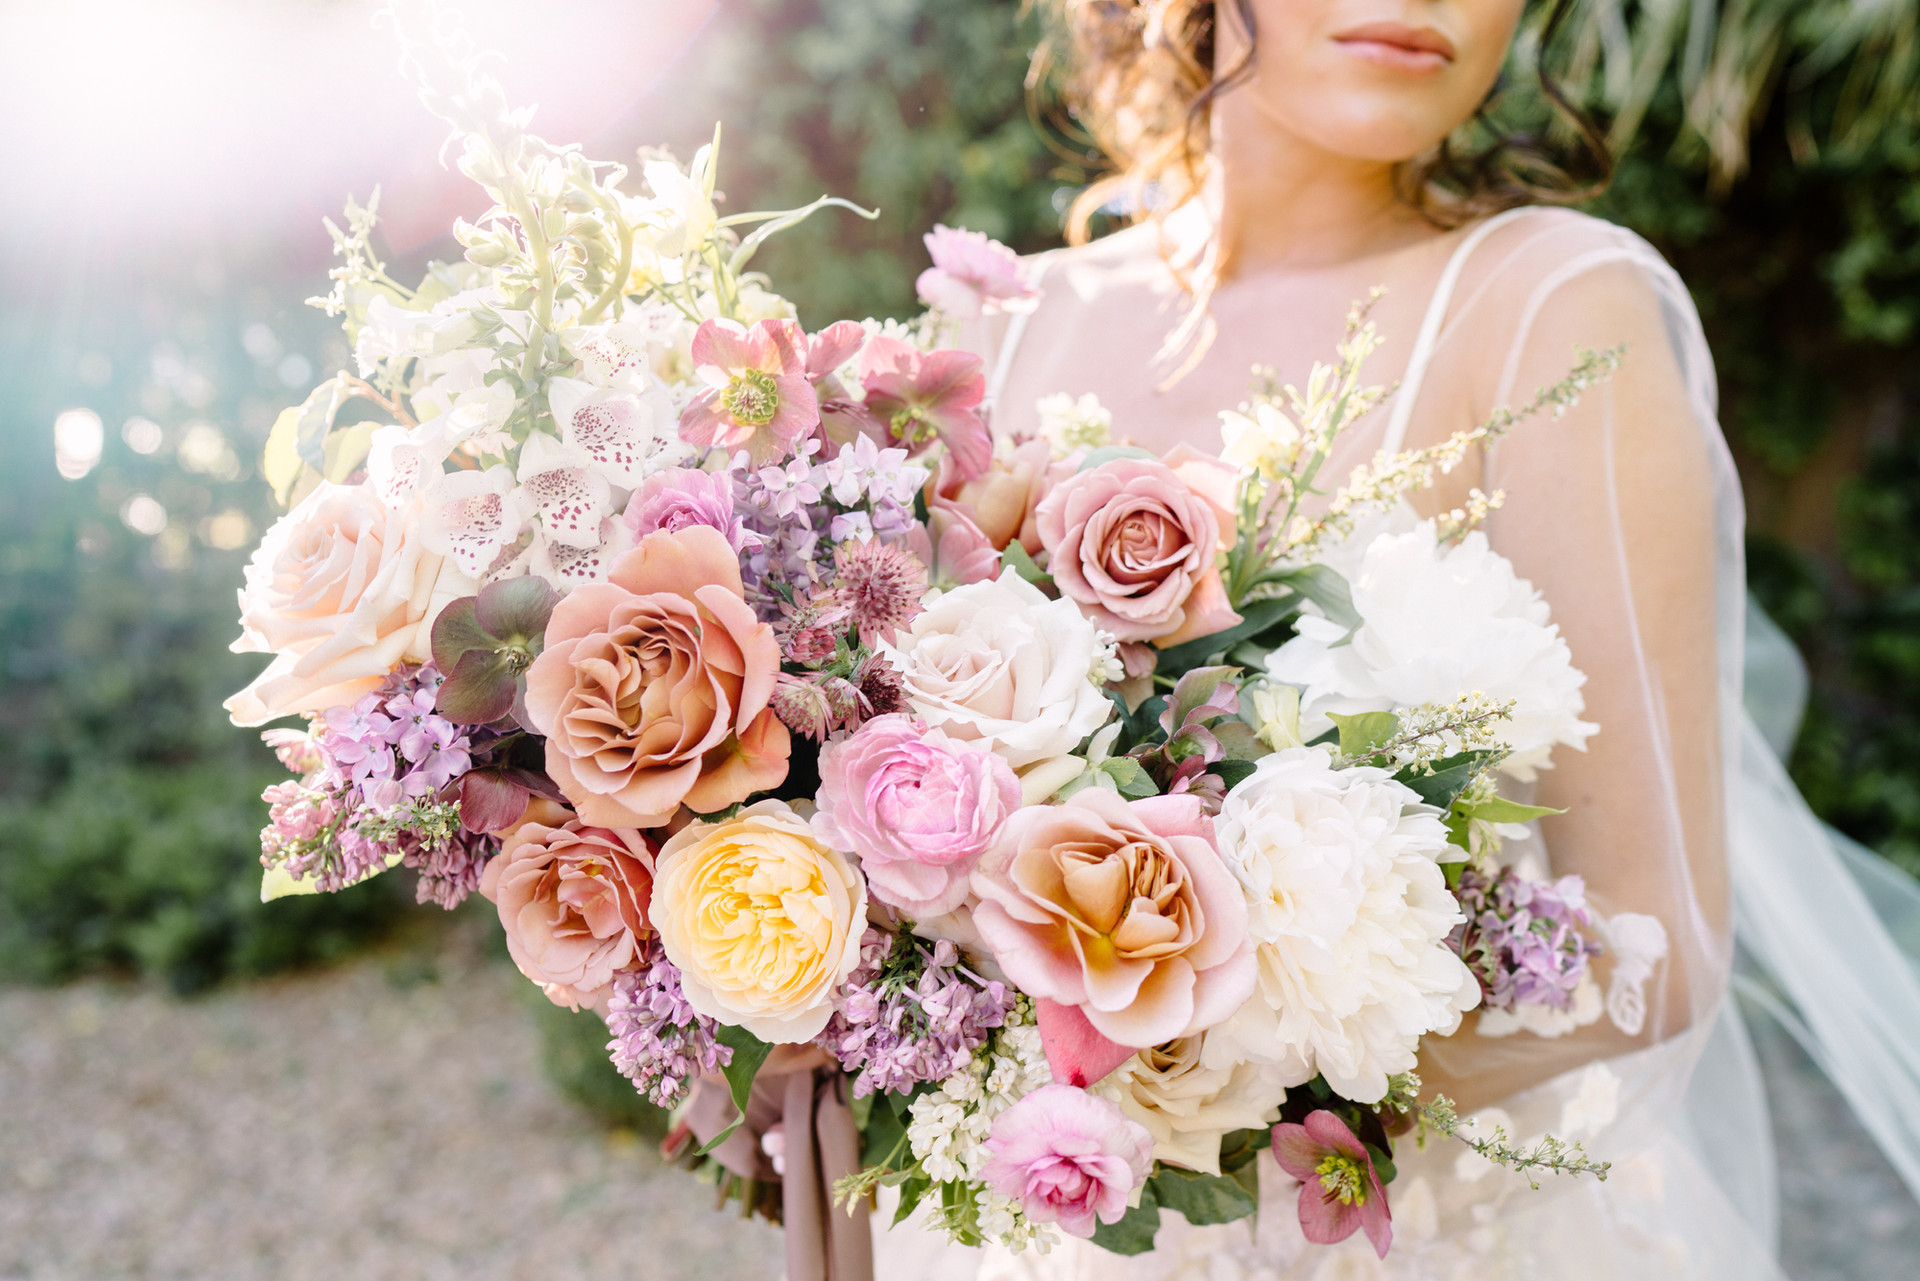 Colorful garden-style bouquet with foxglove, roses, peonies, lilac, hellebores, and ranunculus. Photo: Gaby Jeter